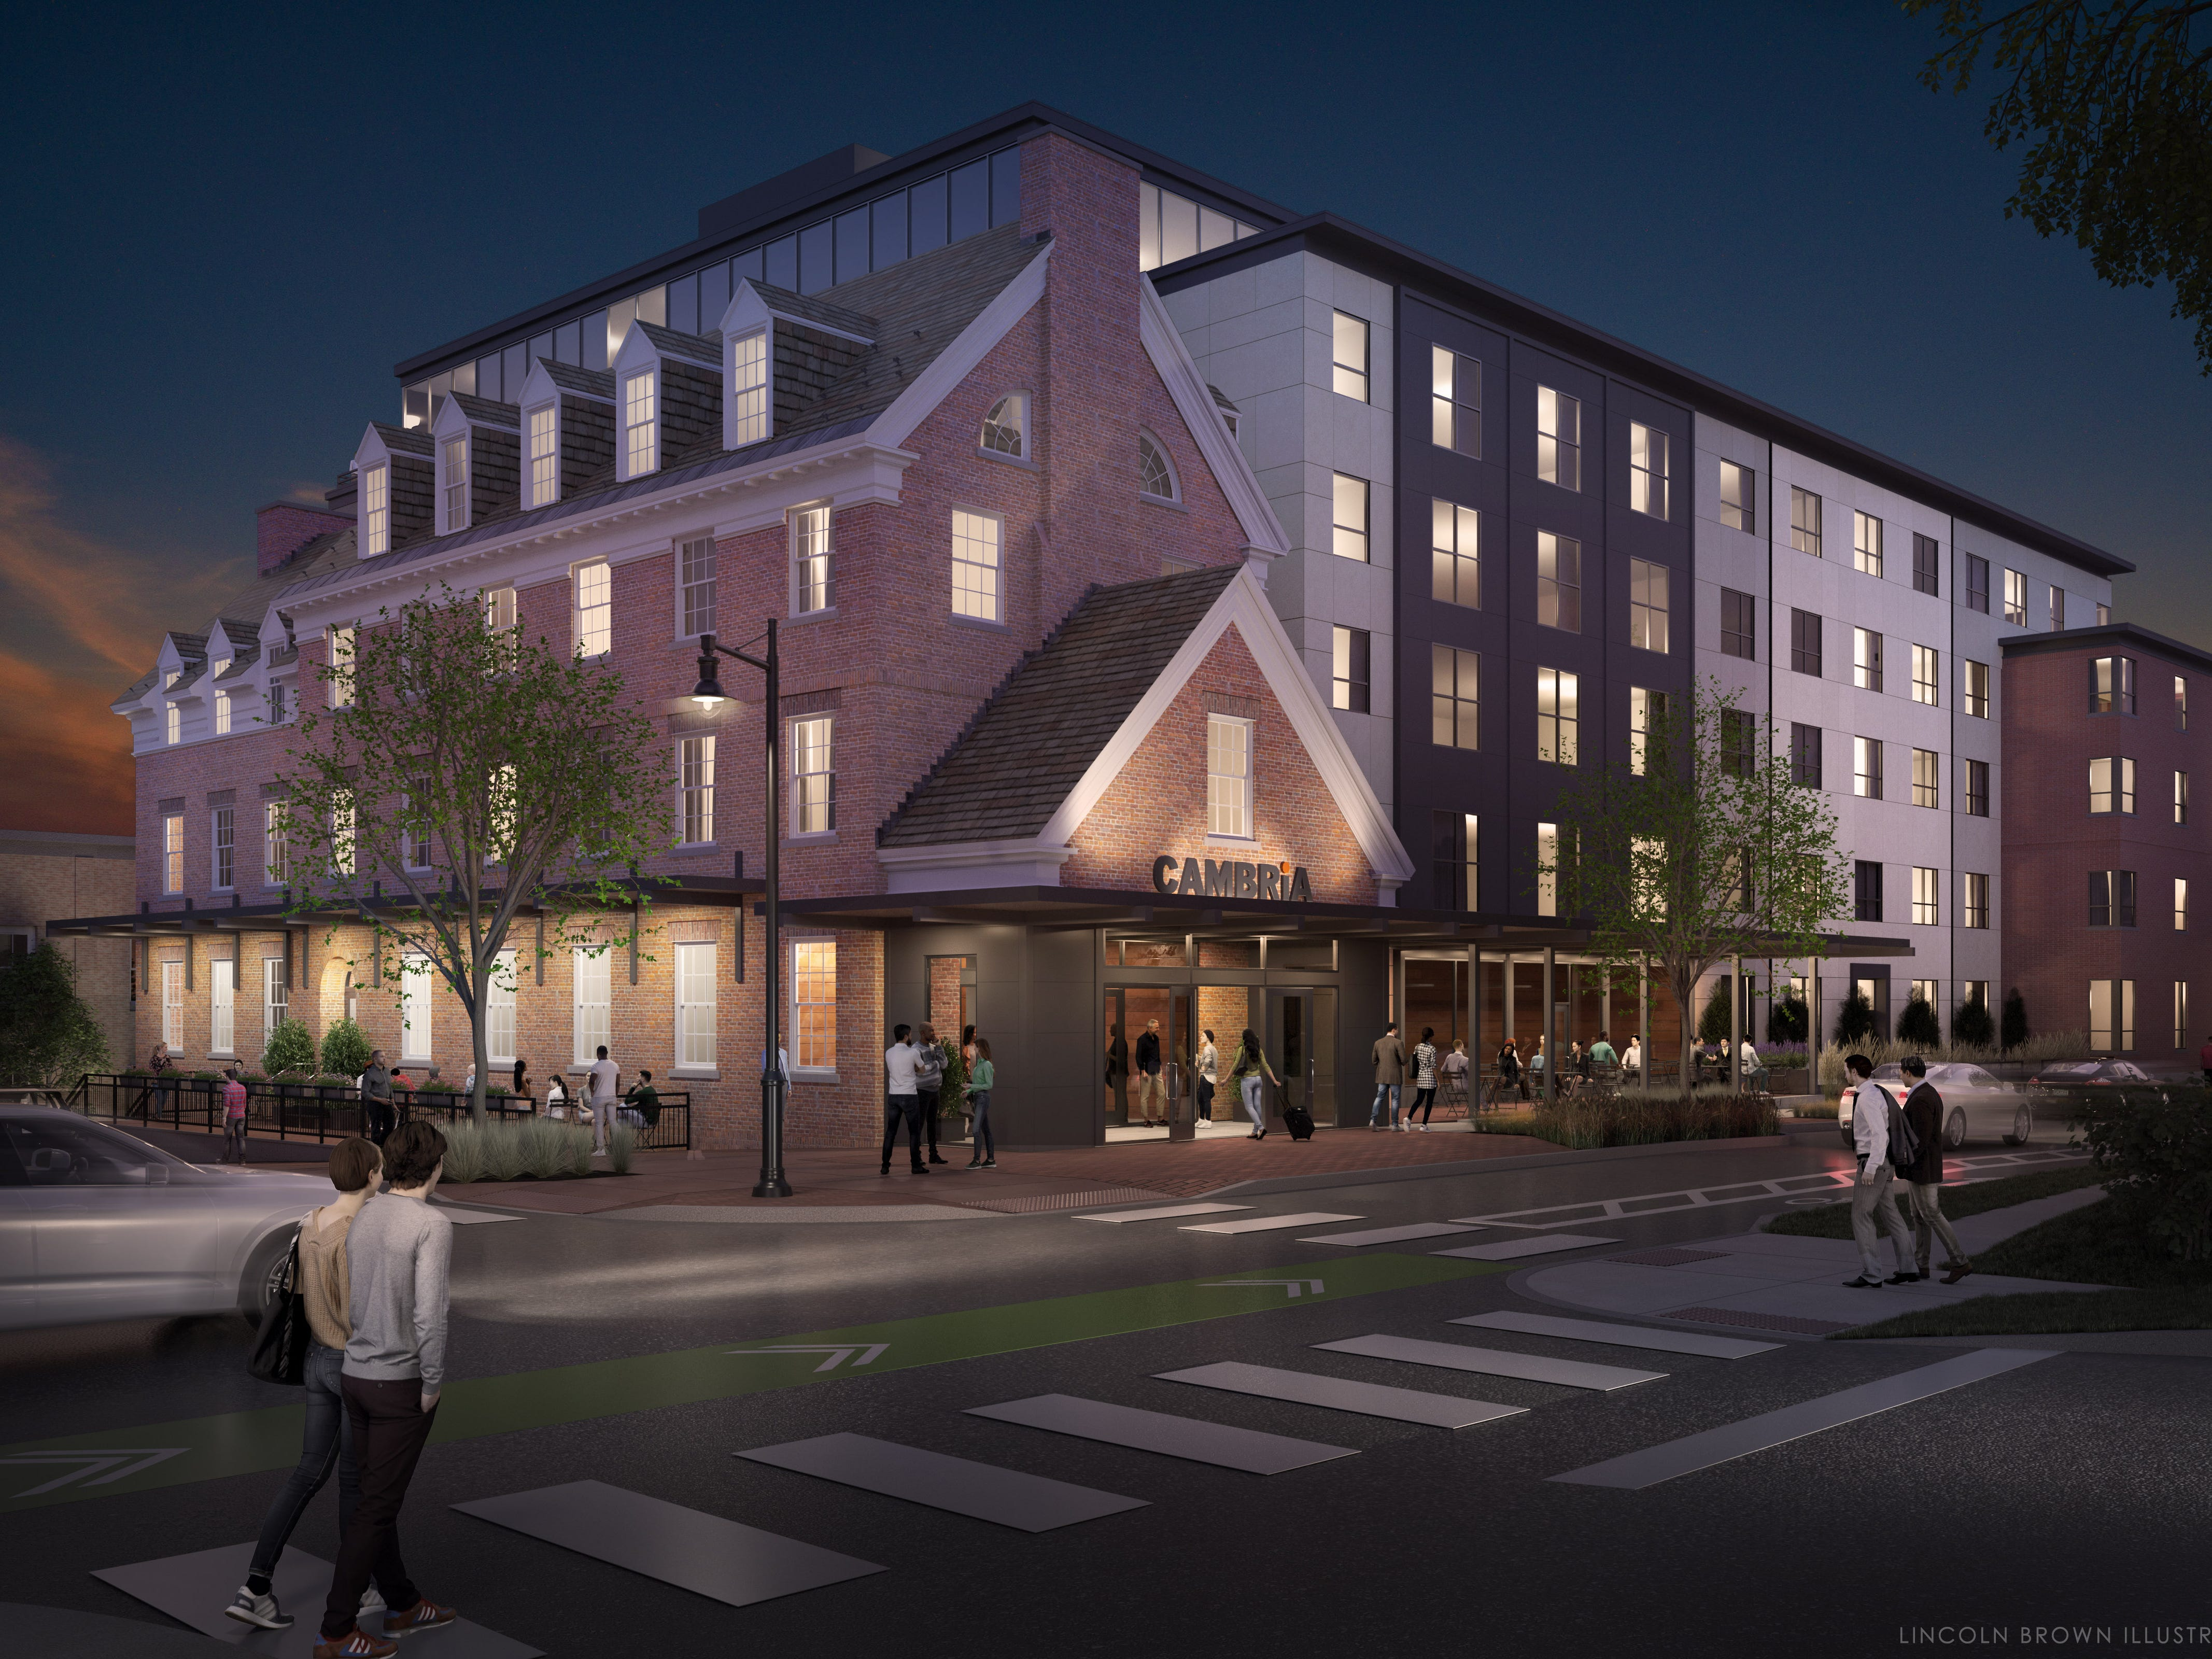 Dusk at the proposed Cambria Hotel in Burlington is seen in this rendering created by Lincoln Brown for Smith Buckley Architects.